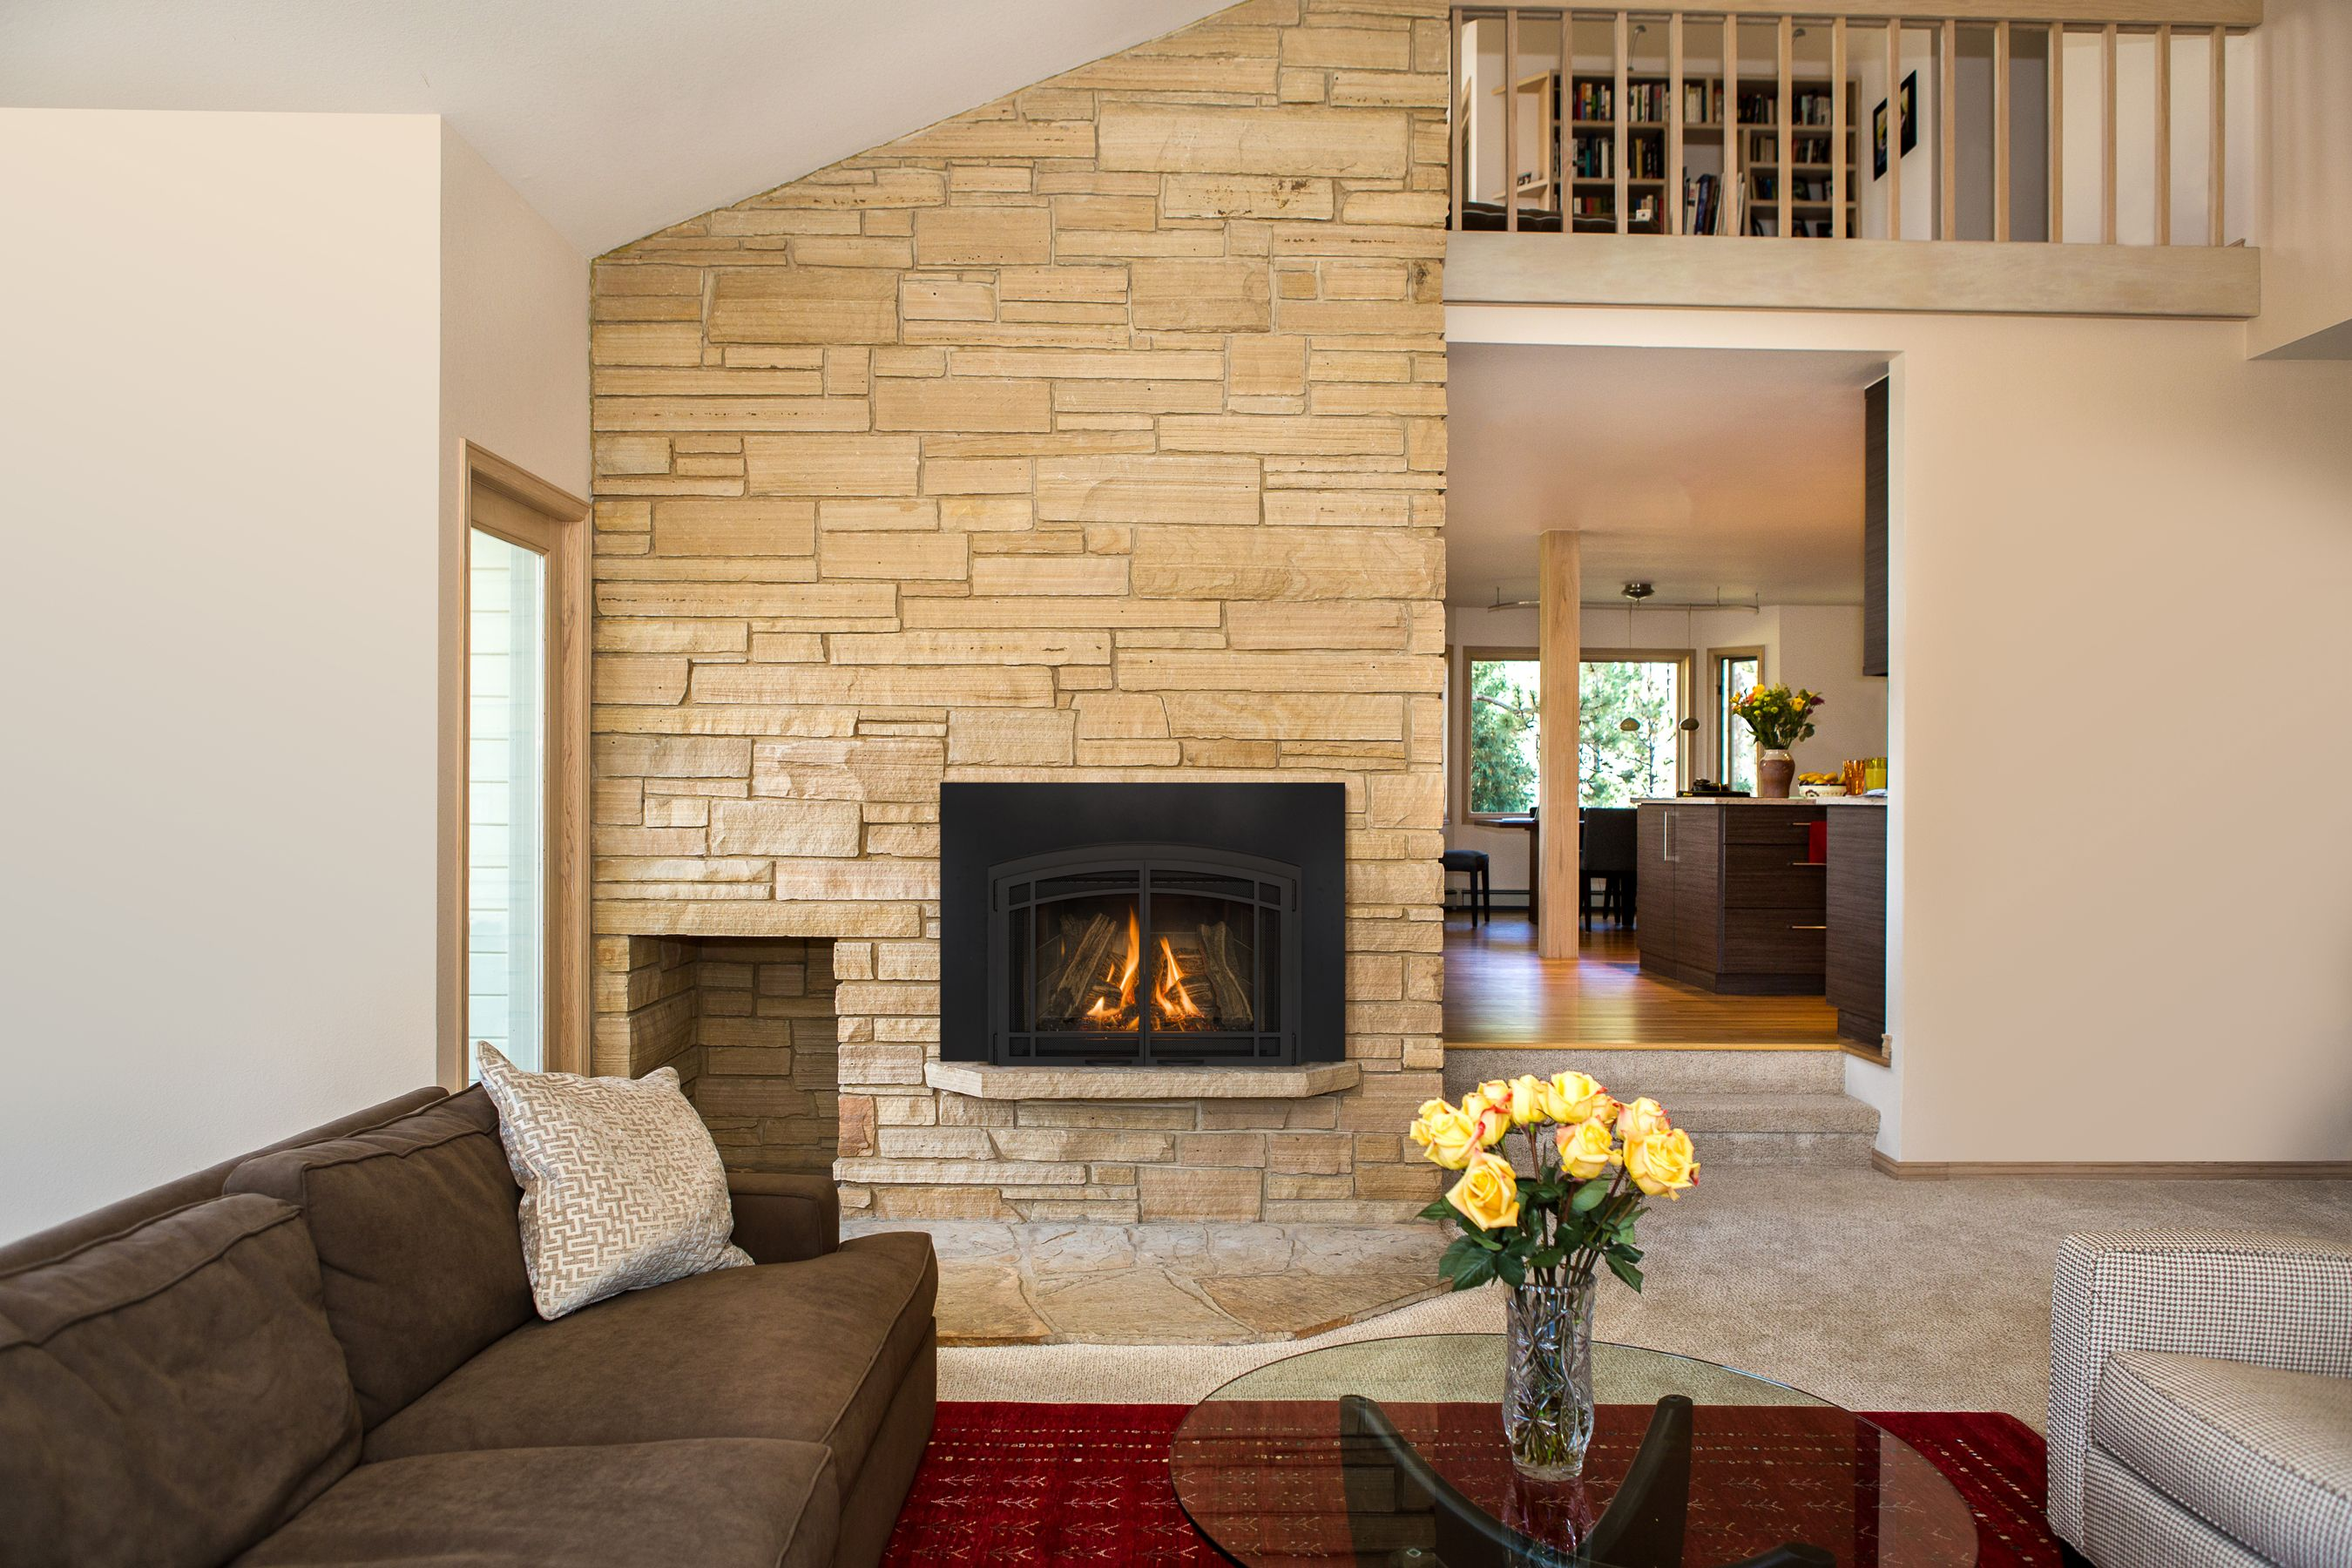 gas fireplace inserts like kozy heat u0027s jordan are low maintenance